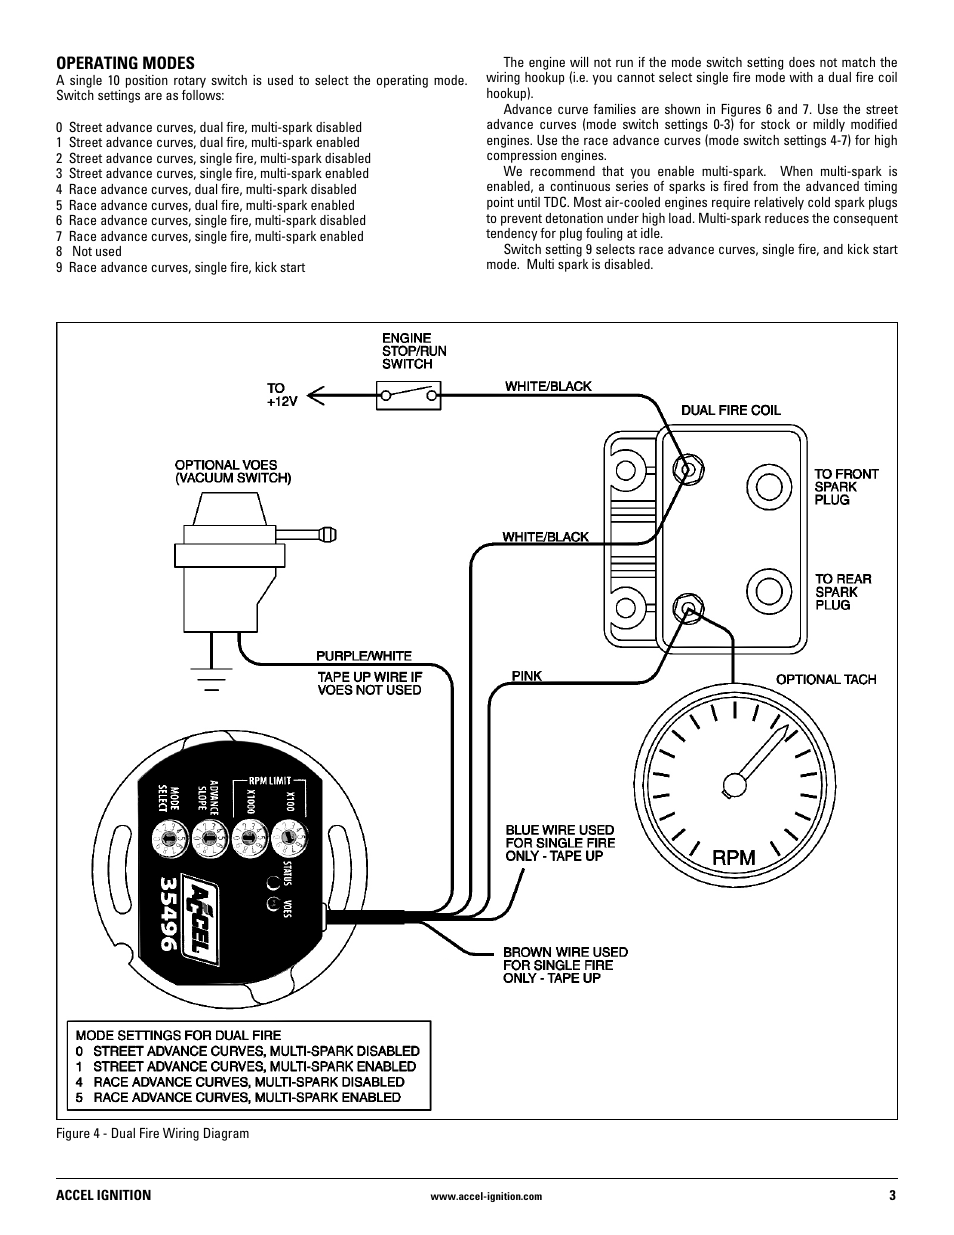 mallory ignition accel ignition 35496 page3?resize\\\\\\\\\\\\\\\=665%2C861 mallory unilite wiring diagram tamahuproject org mallory unilite distributor wiring diagram at mifinder.co